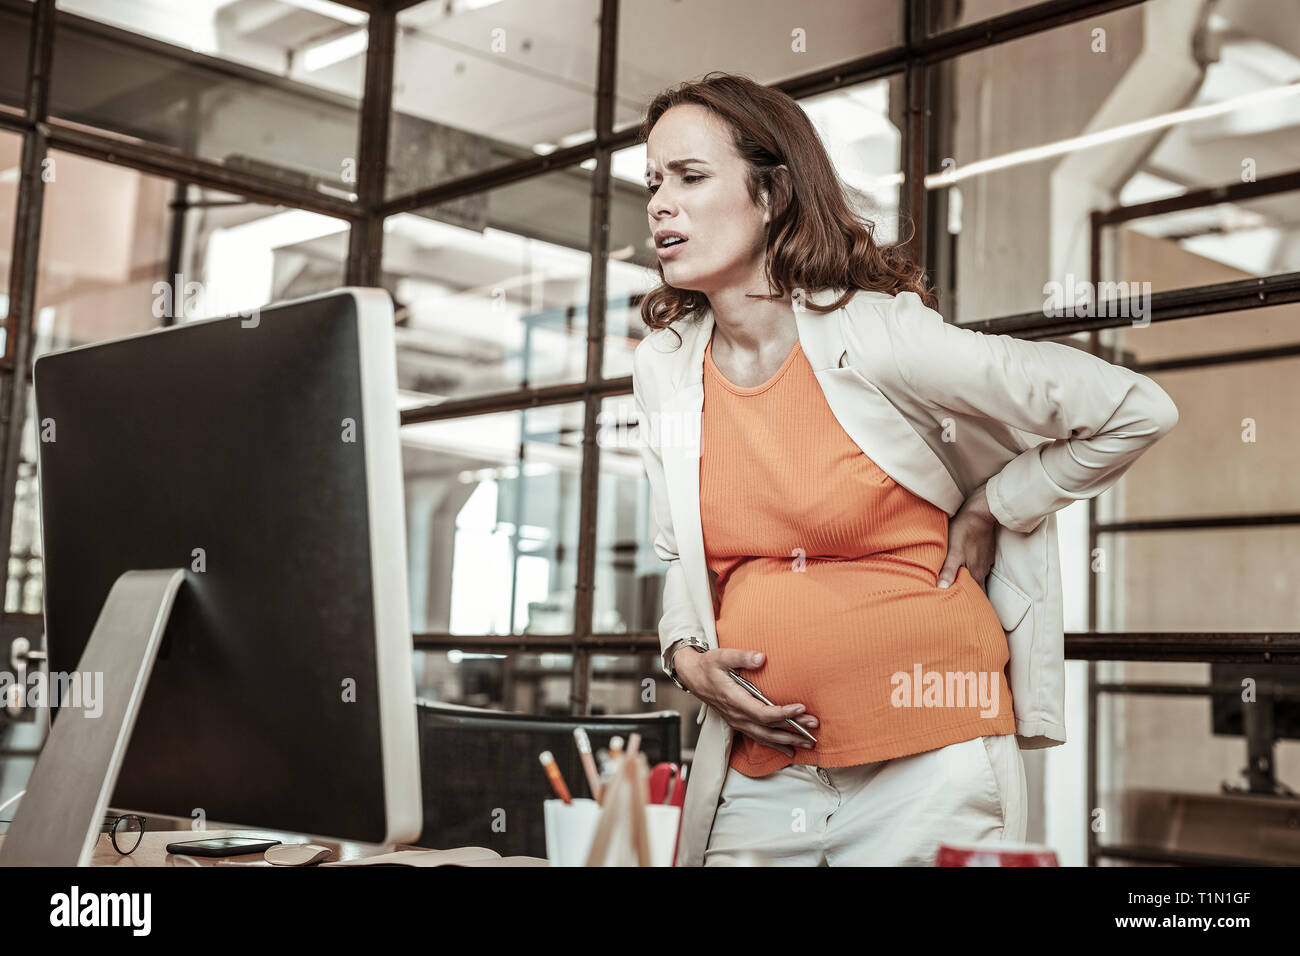 Unstable dark-haired pregnant woman holding her stomach and back - Stock Image